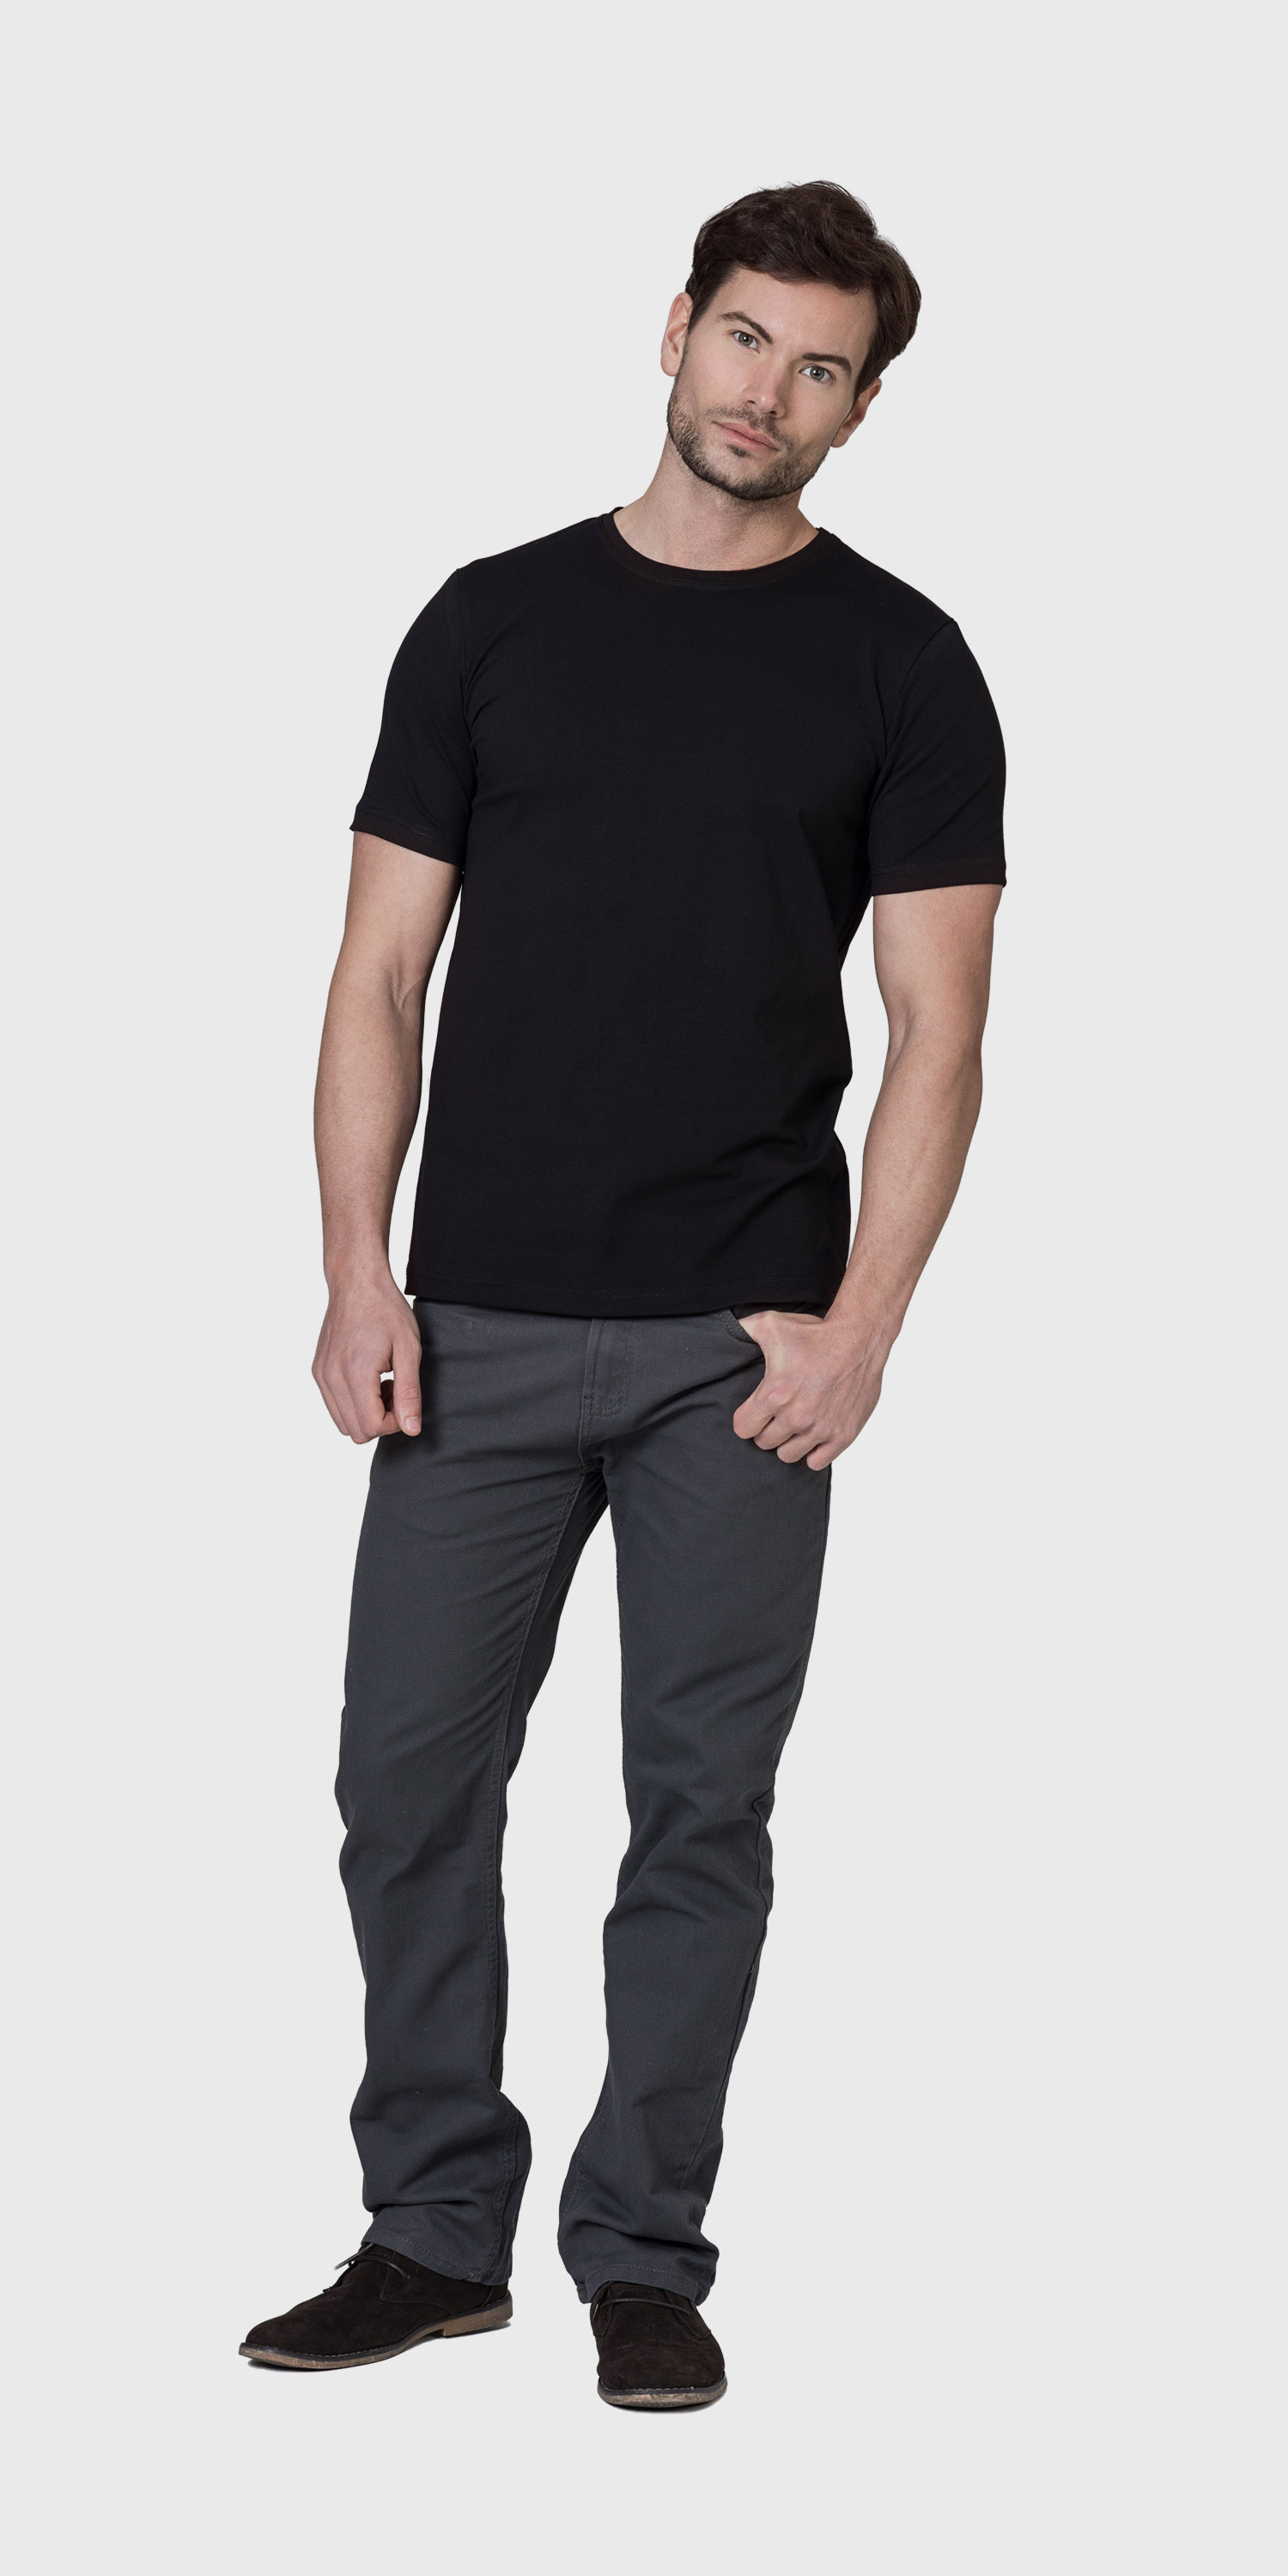 Black t shirt mens - Mens Black T Shirt Organic Cotton